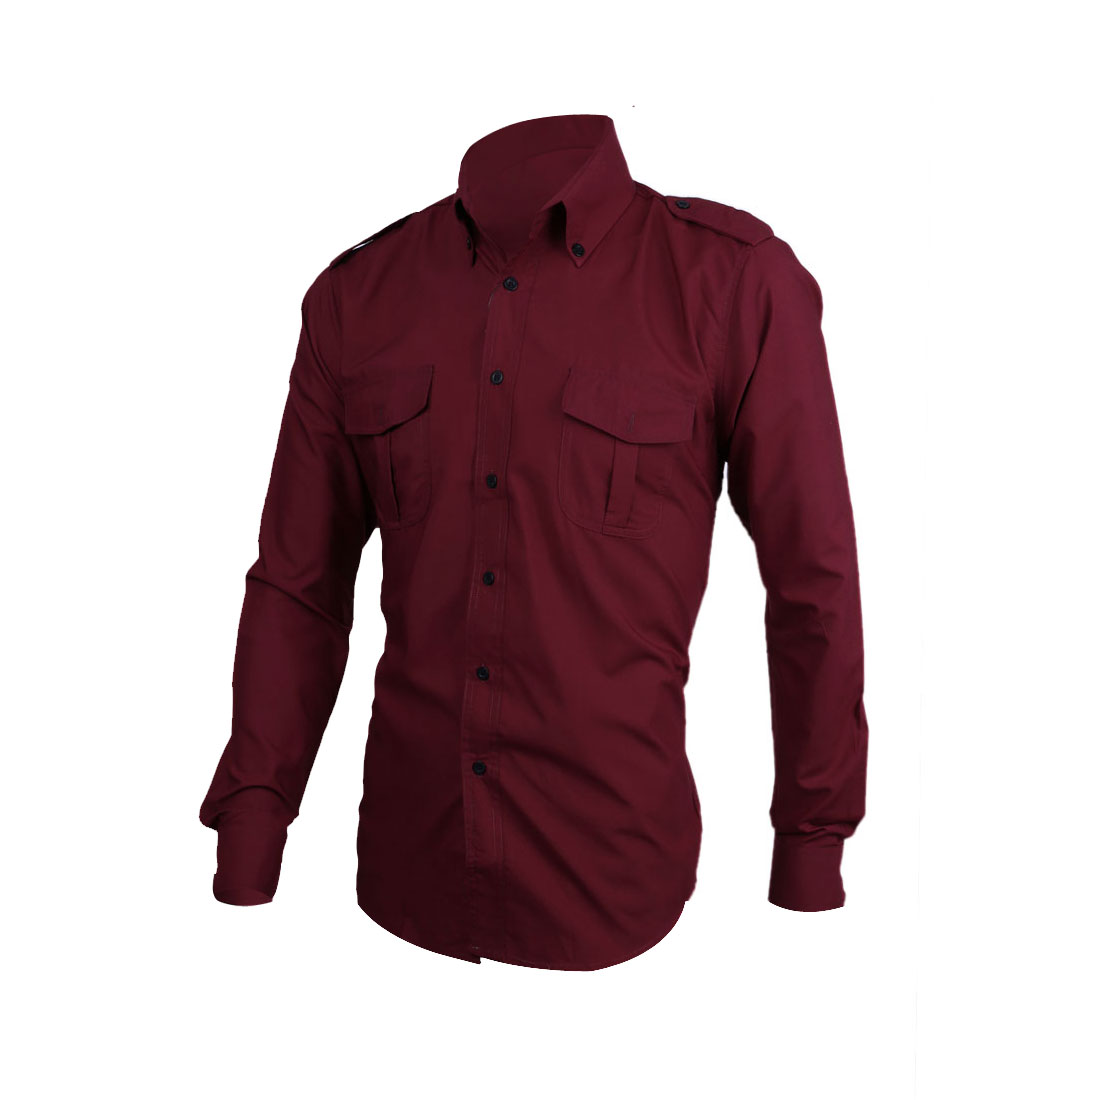 Men Single Breasted Buttoned Up Front Flap Pocket Shirt Burgundy M